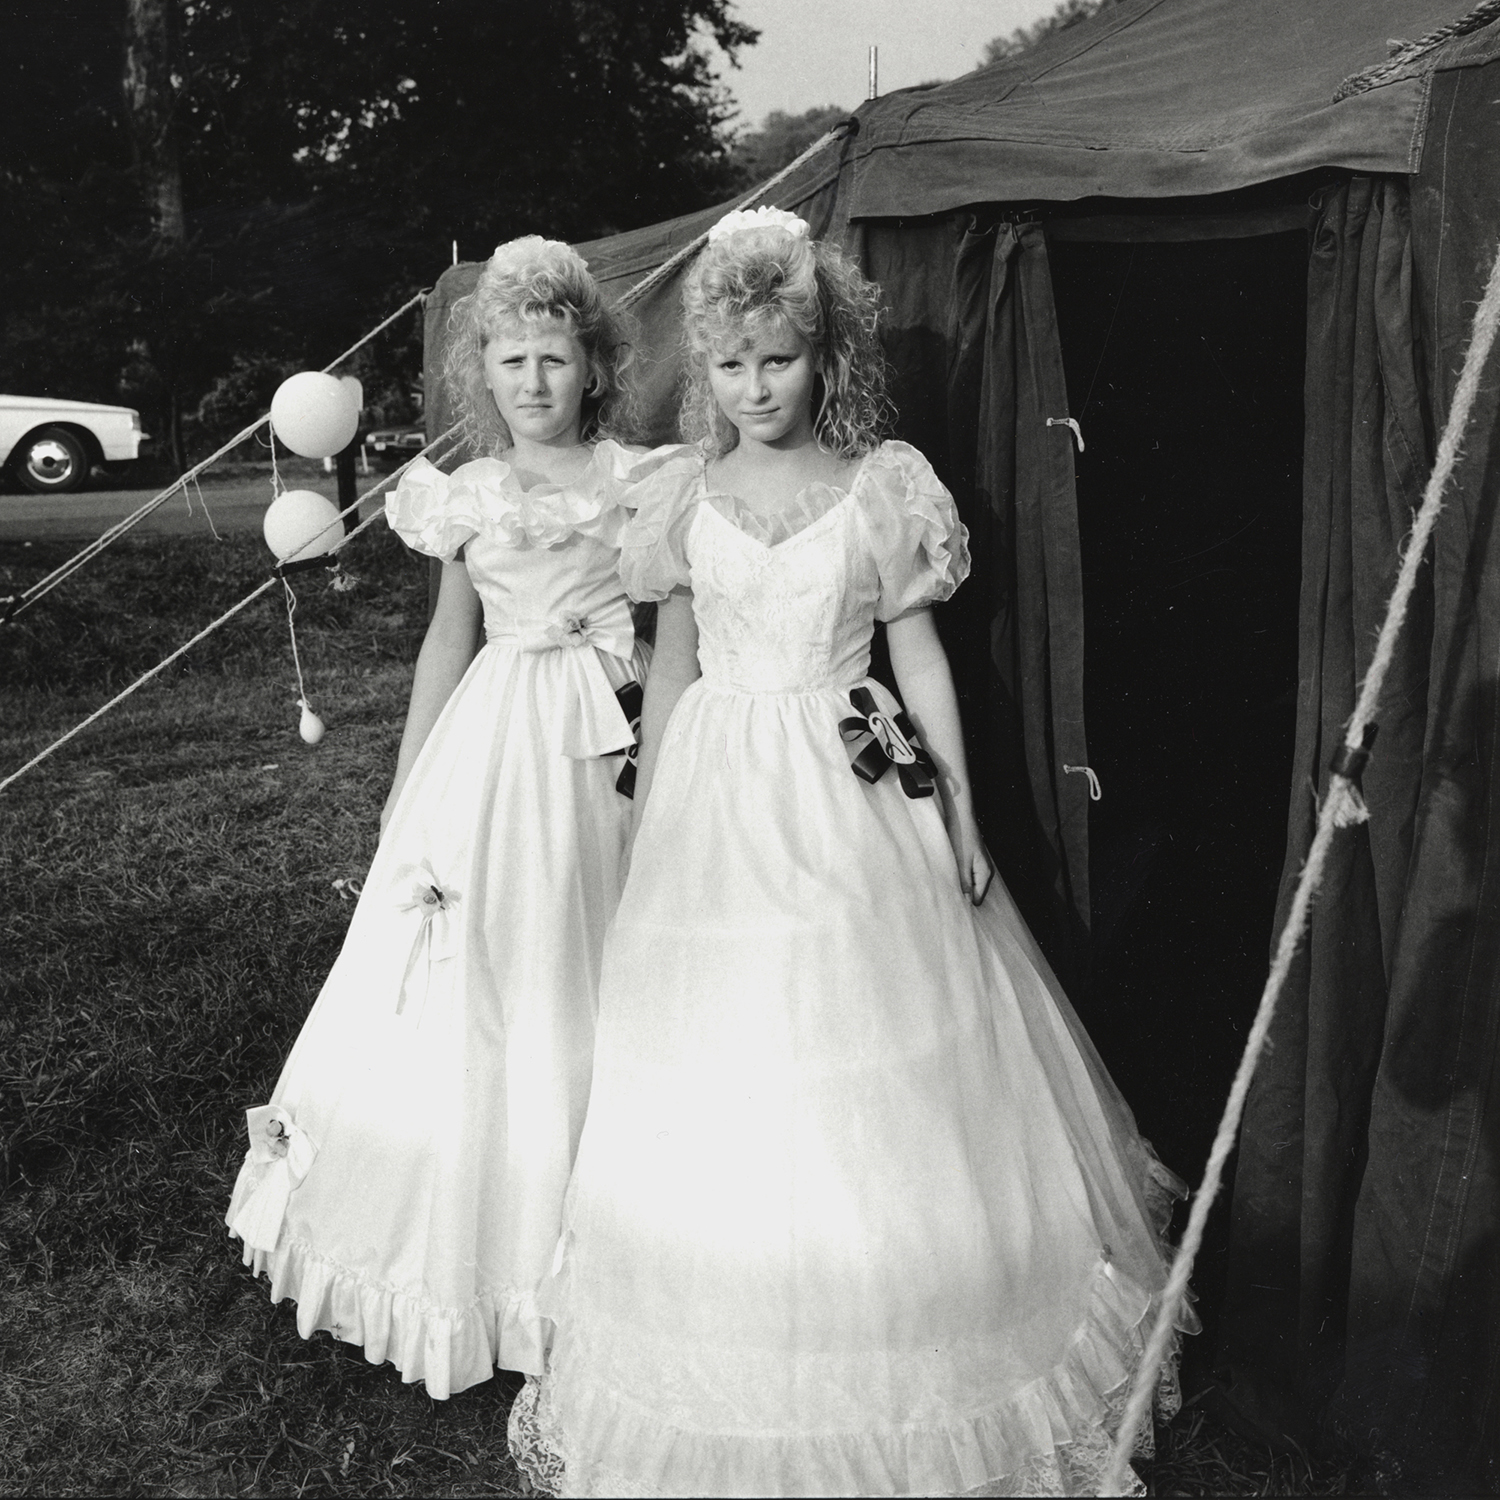 Christy and Misty, Ashland City, Tennessee, archival pigment print,16x20, 1990